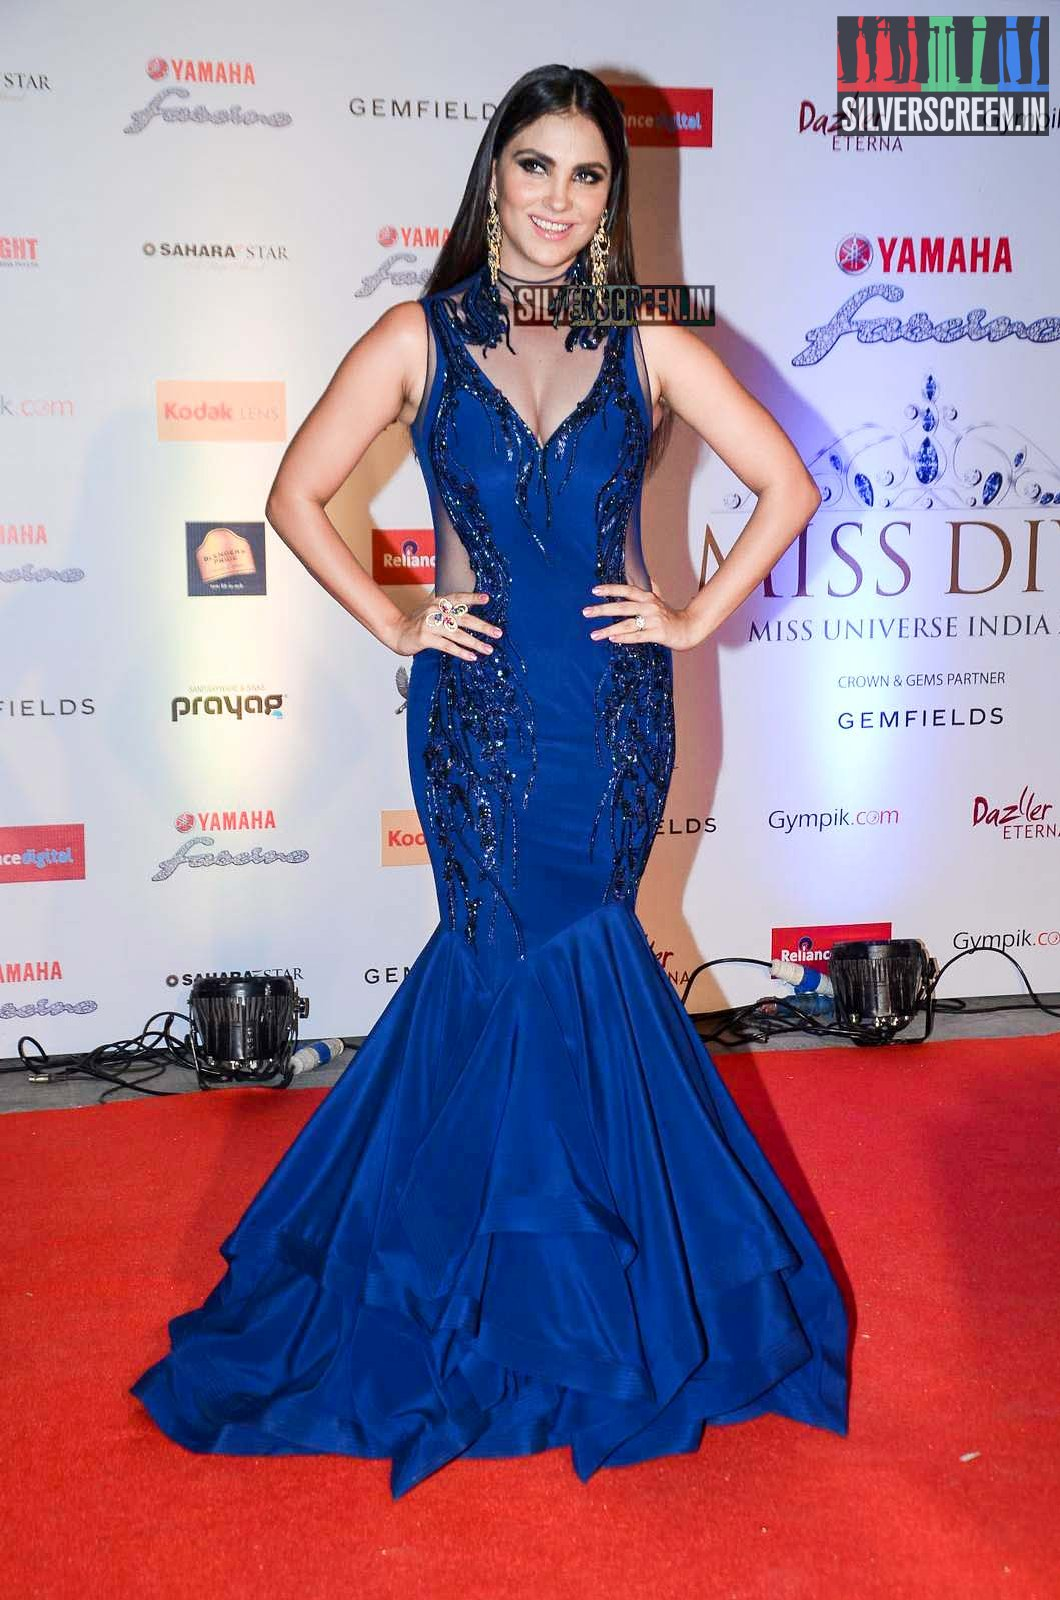 Celebrities At Miss Diva Red Carpet 2015 Silverscreen In